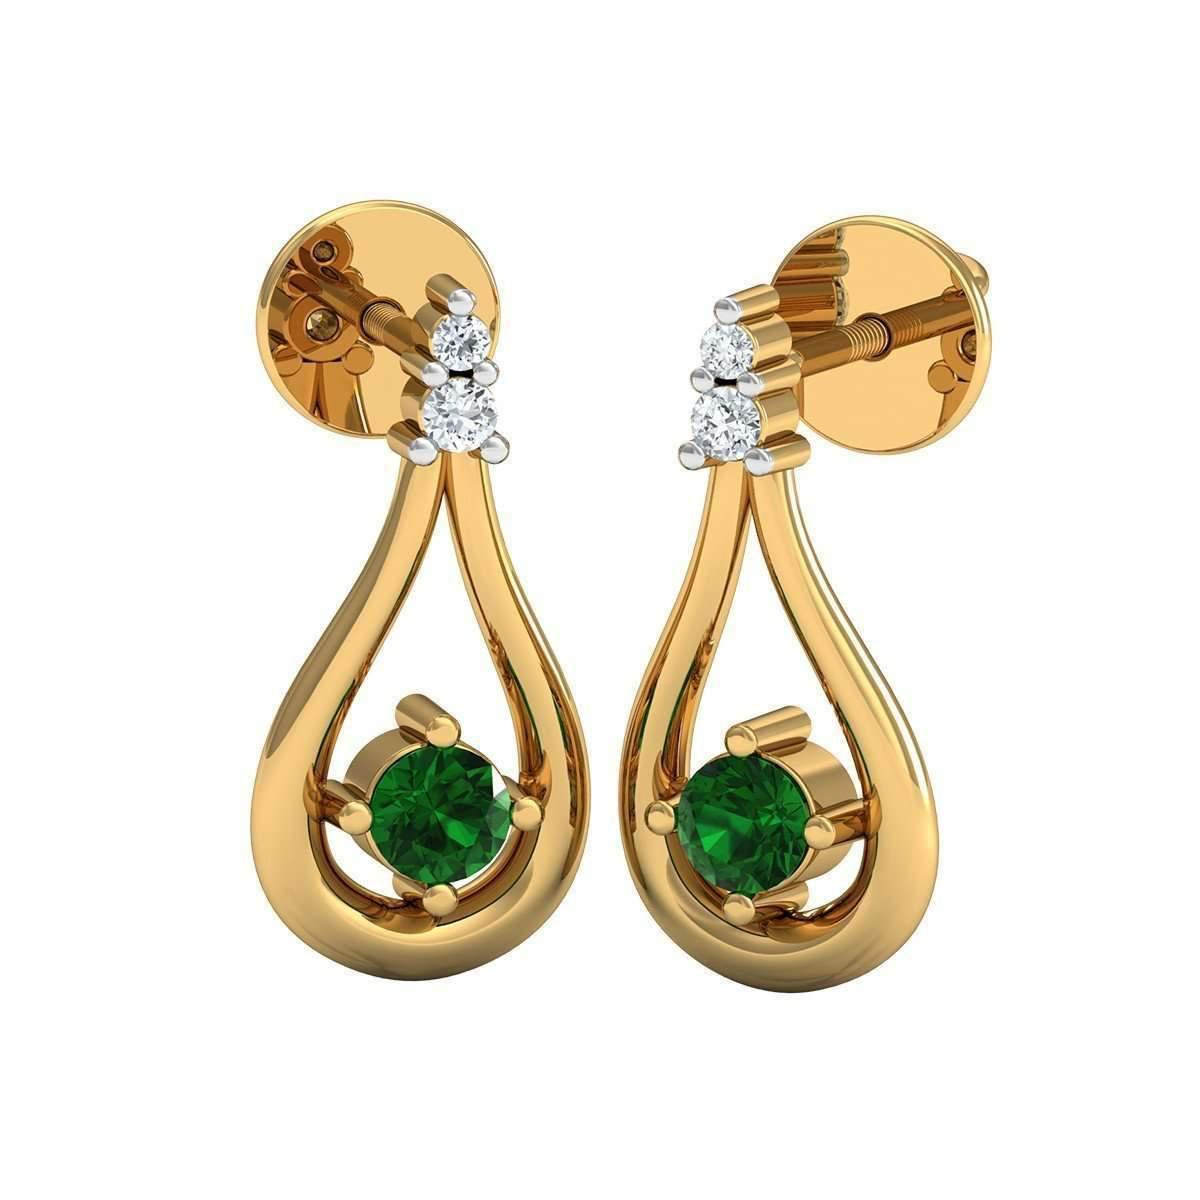 Diamoire Jewels Hand-carved 10kt Yellow Gold Prong Emerald Earrings with Diamonds pIveIvRtxh